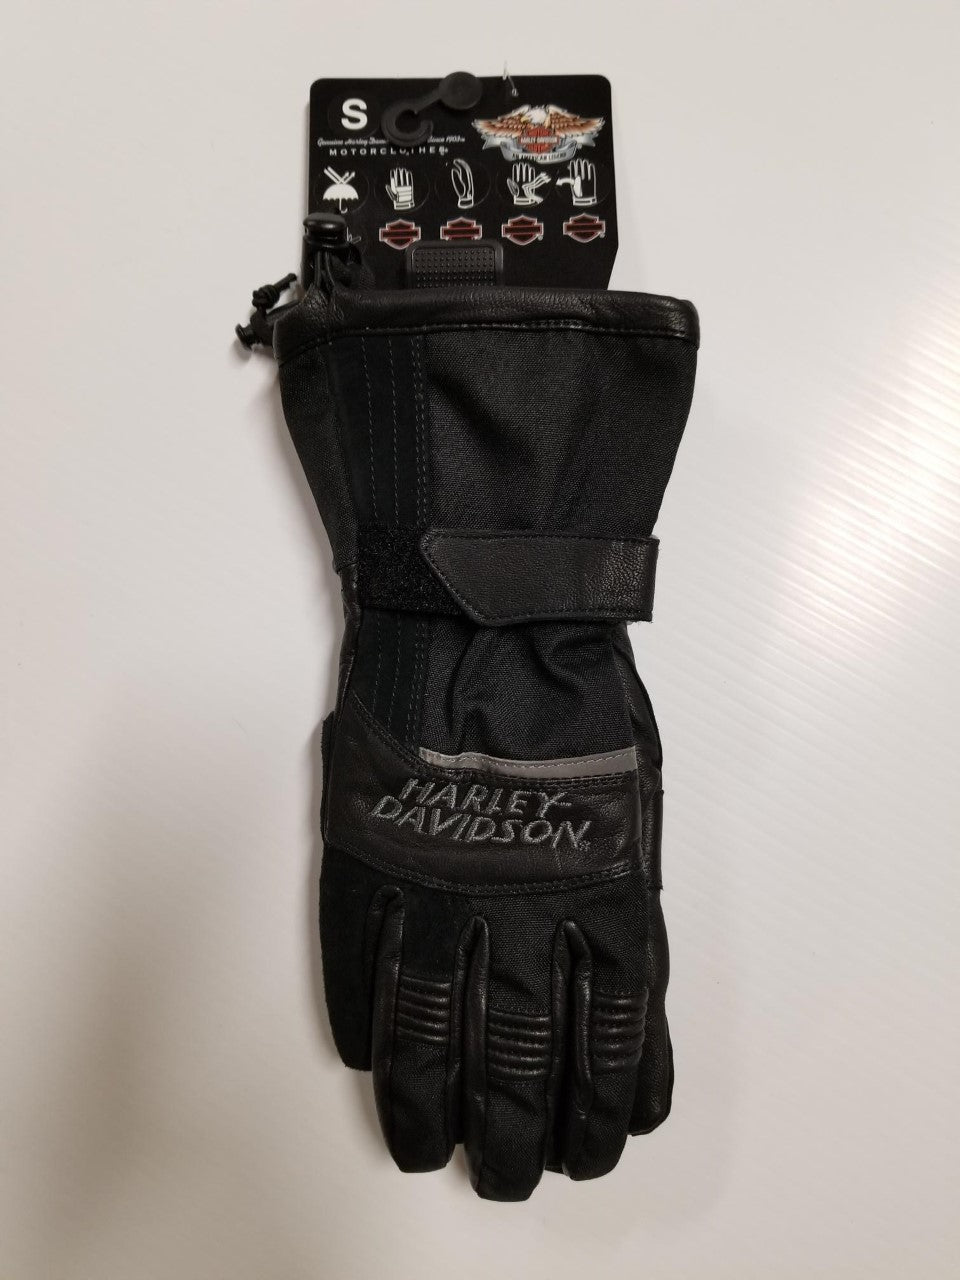 Harley-Davidson glove-rampart,gauntlet feb del/mans black